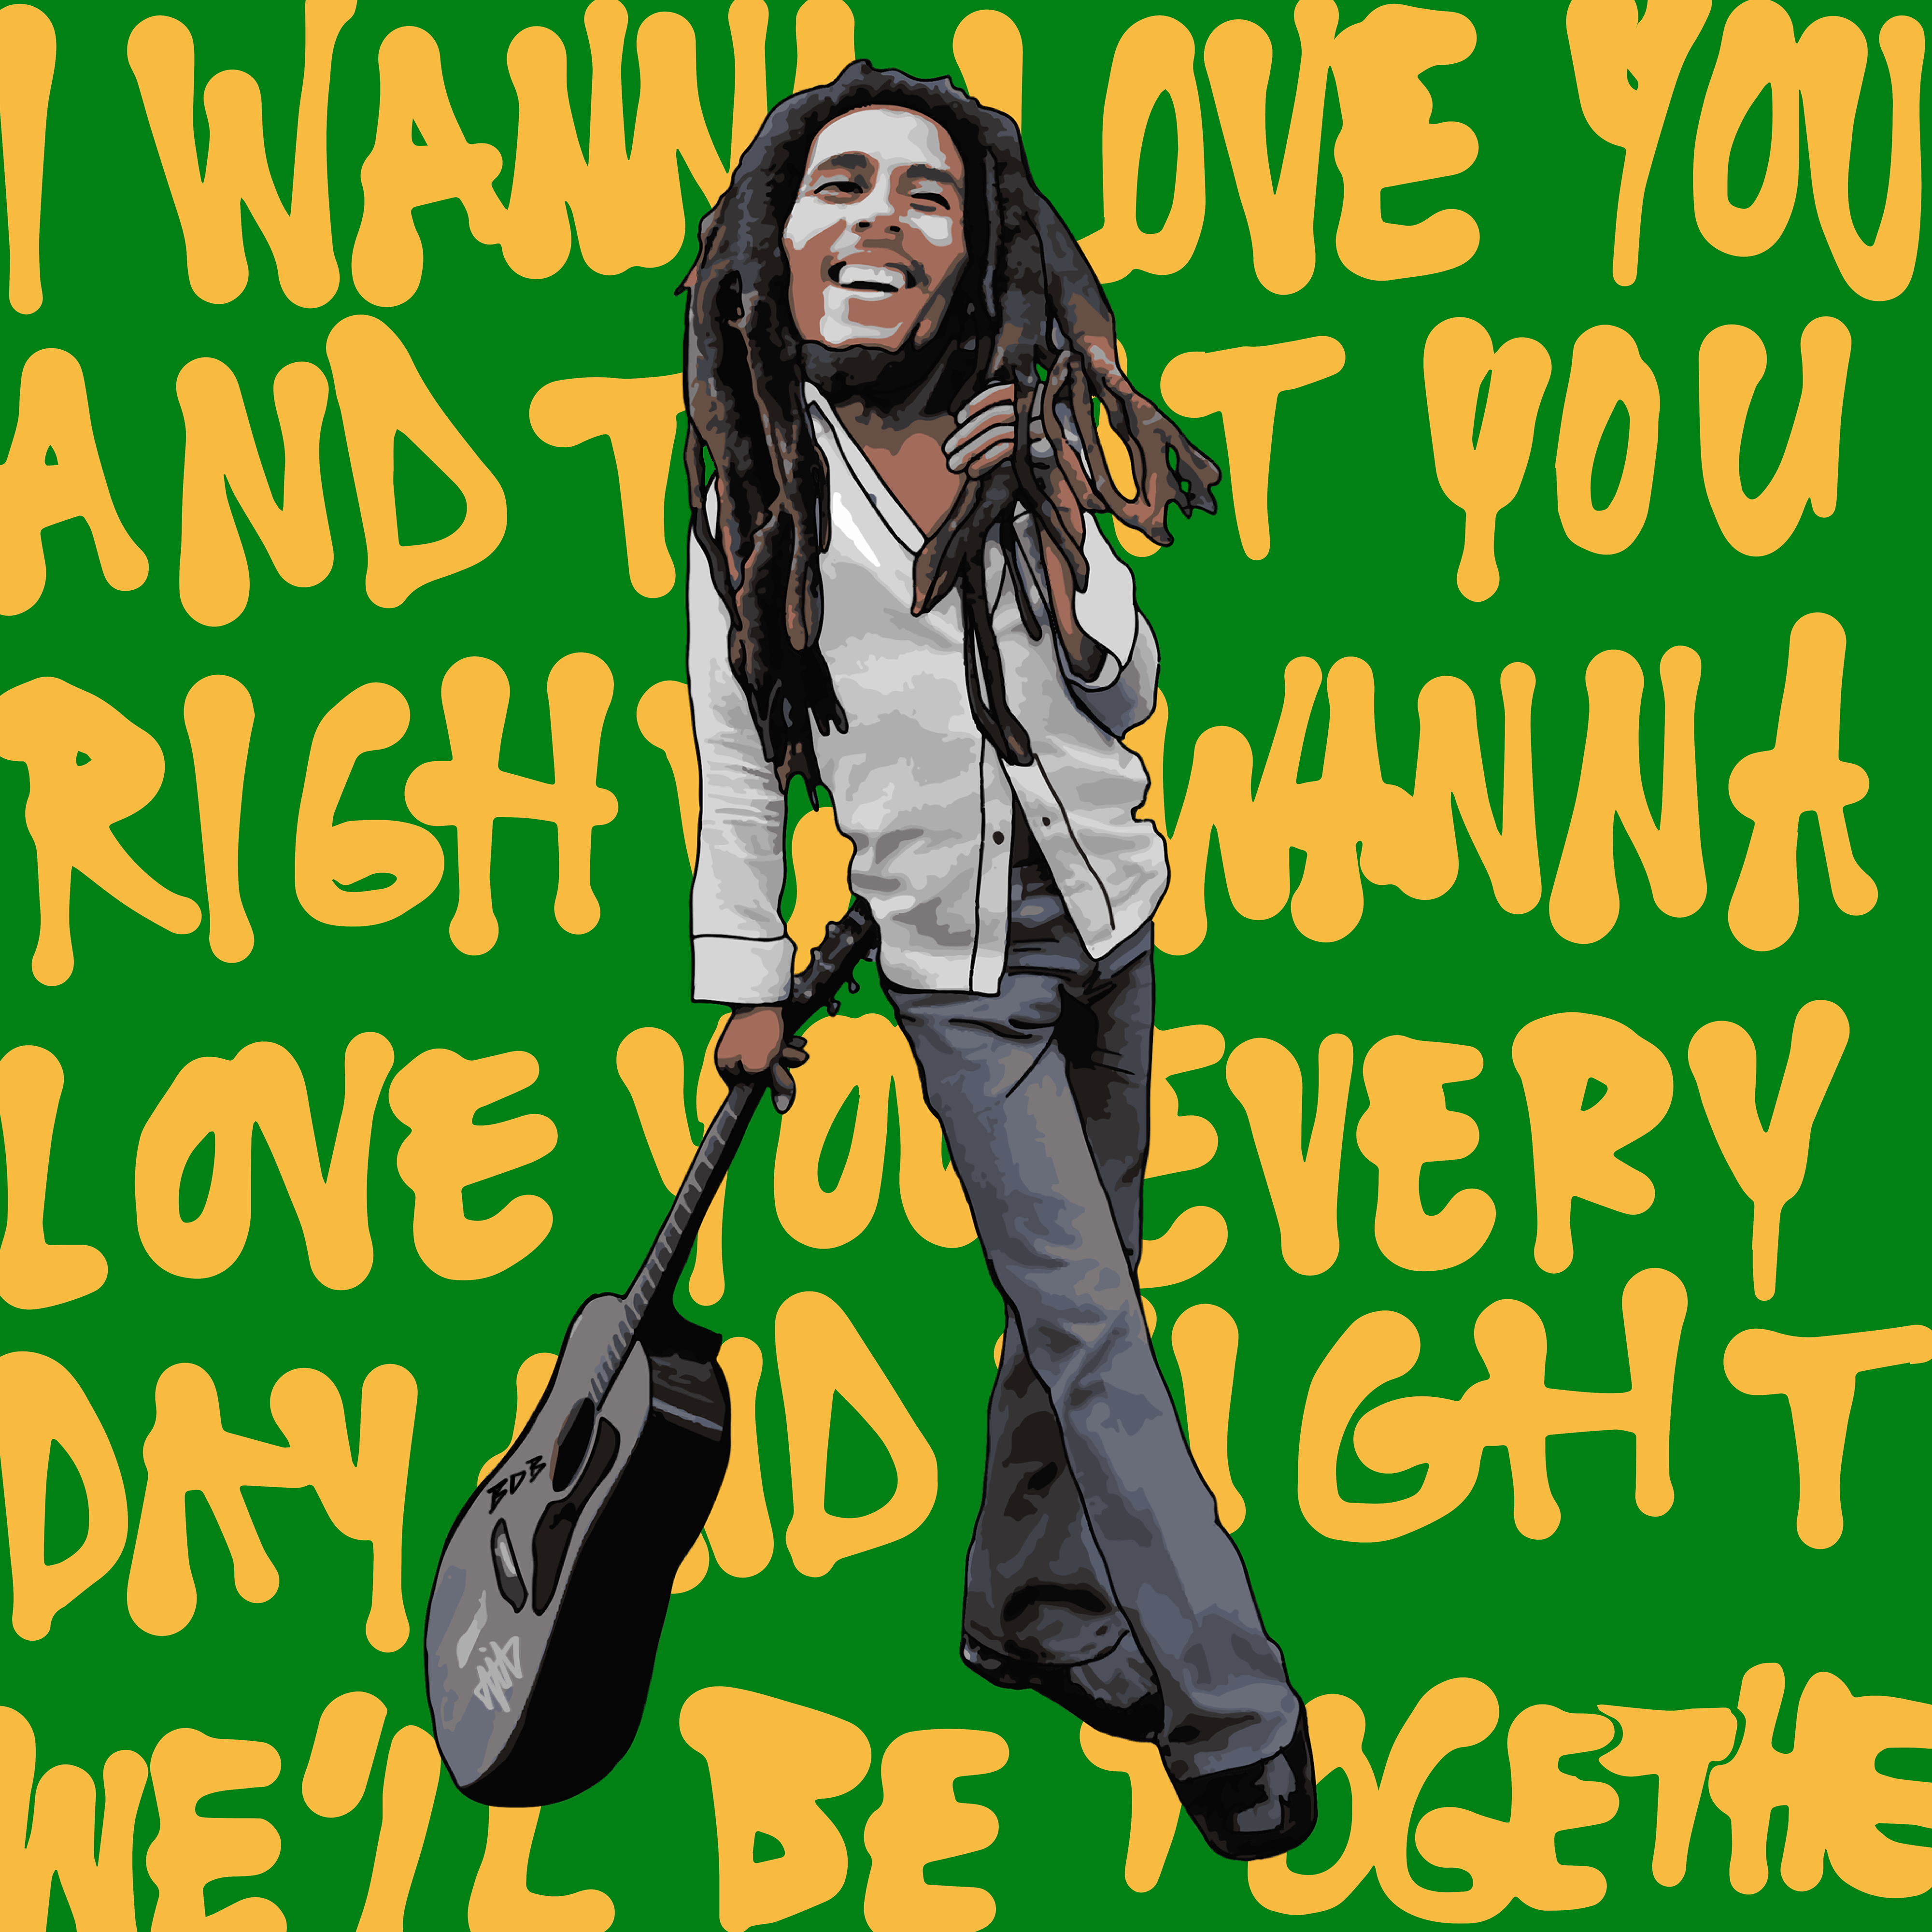 is this love bob marley bachata Antonio bliss bachata sax concert dj soltrix listen to a live pianist plus love songs this will be the from el general to bob marley & everything in- between gets ready to sway to the sounds of the islands this room.